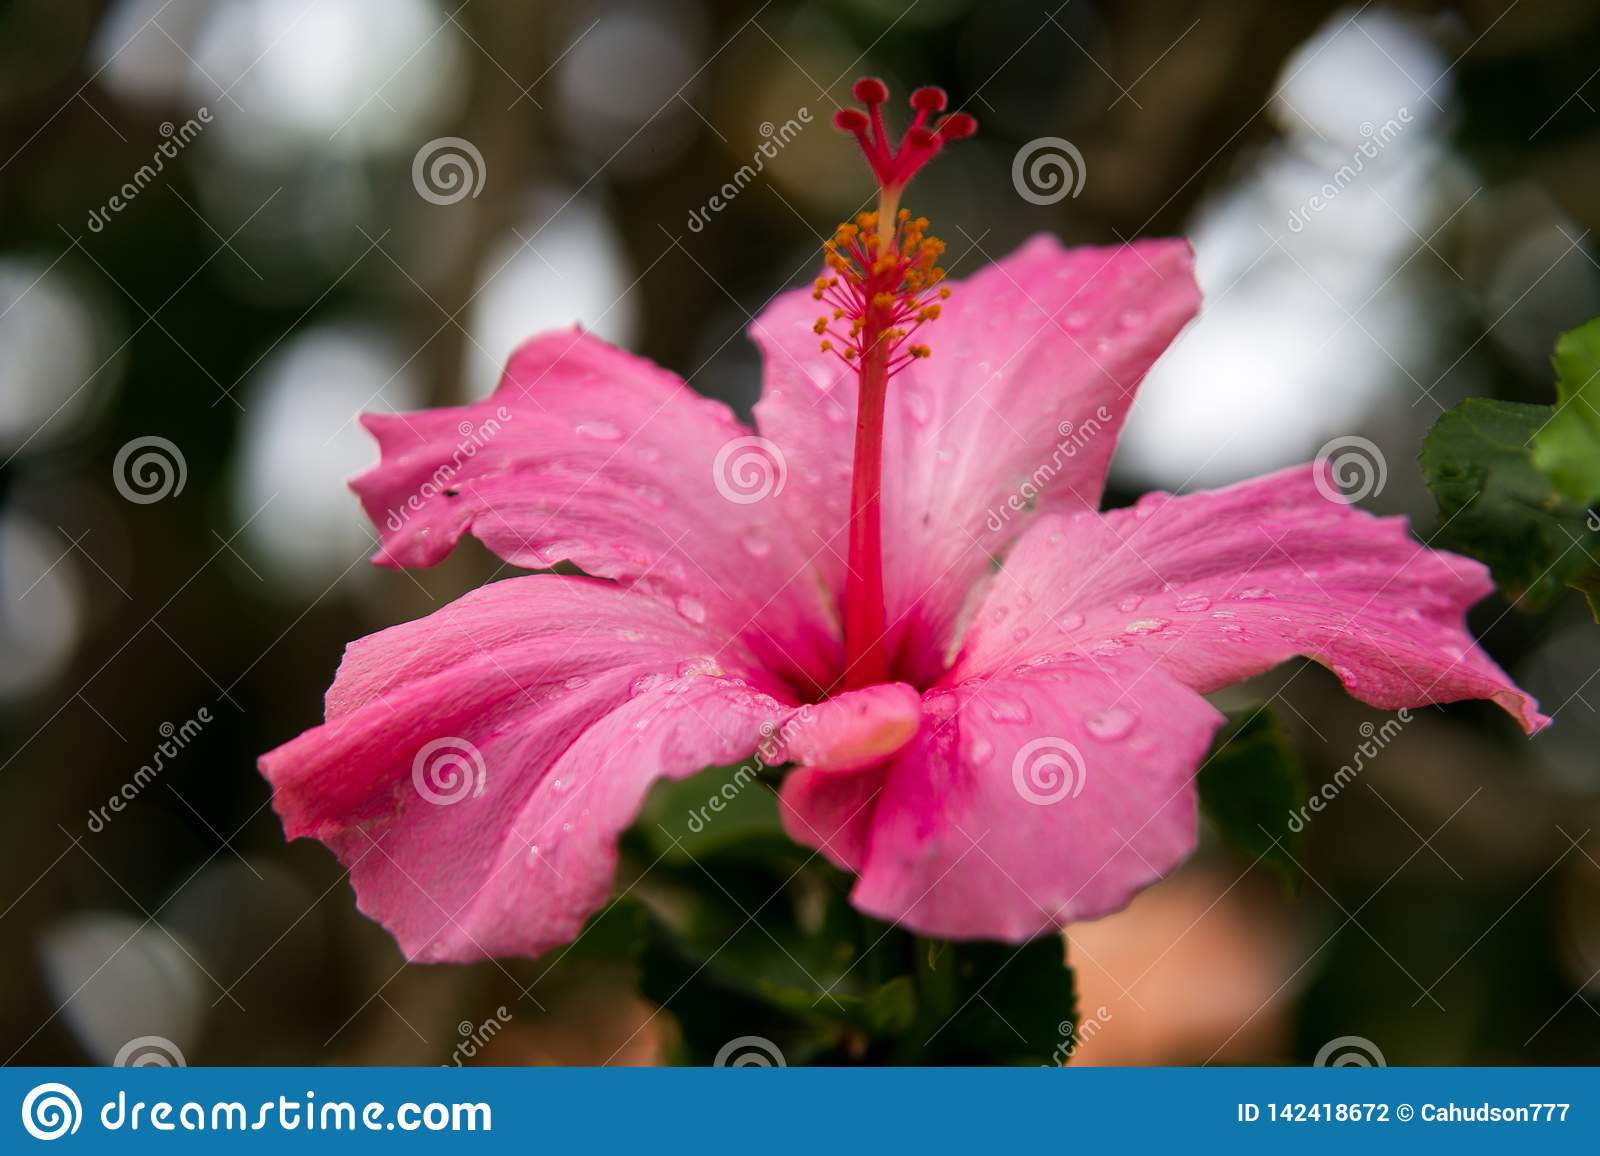 A close-up of a pink hibiscus flower after the rain.